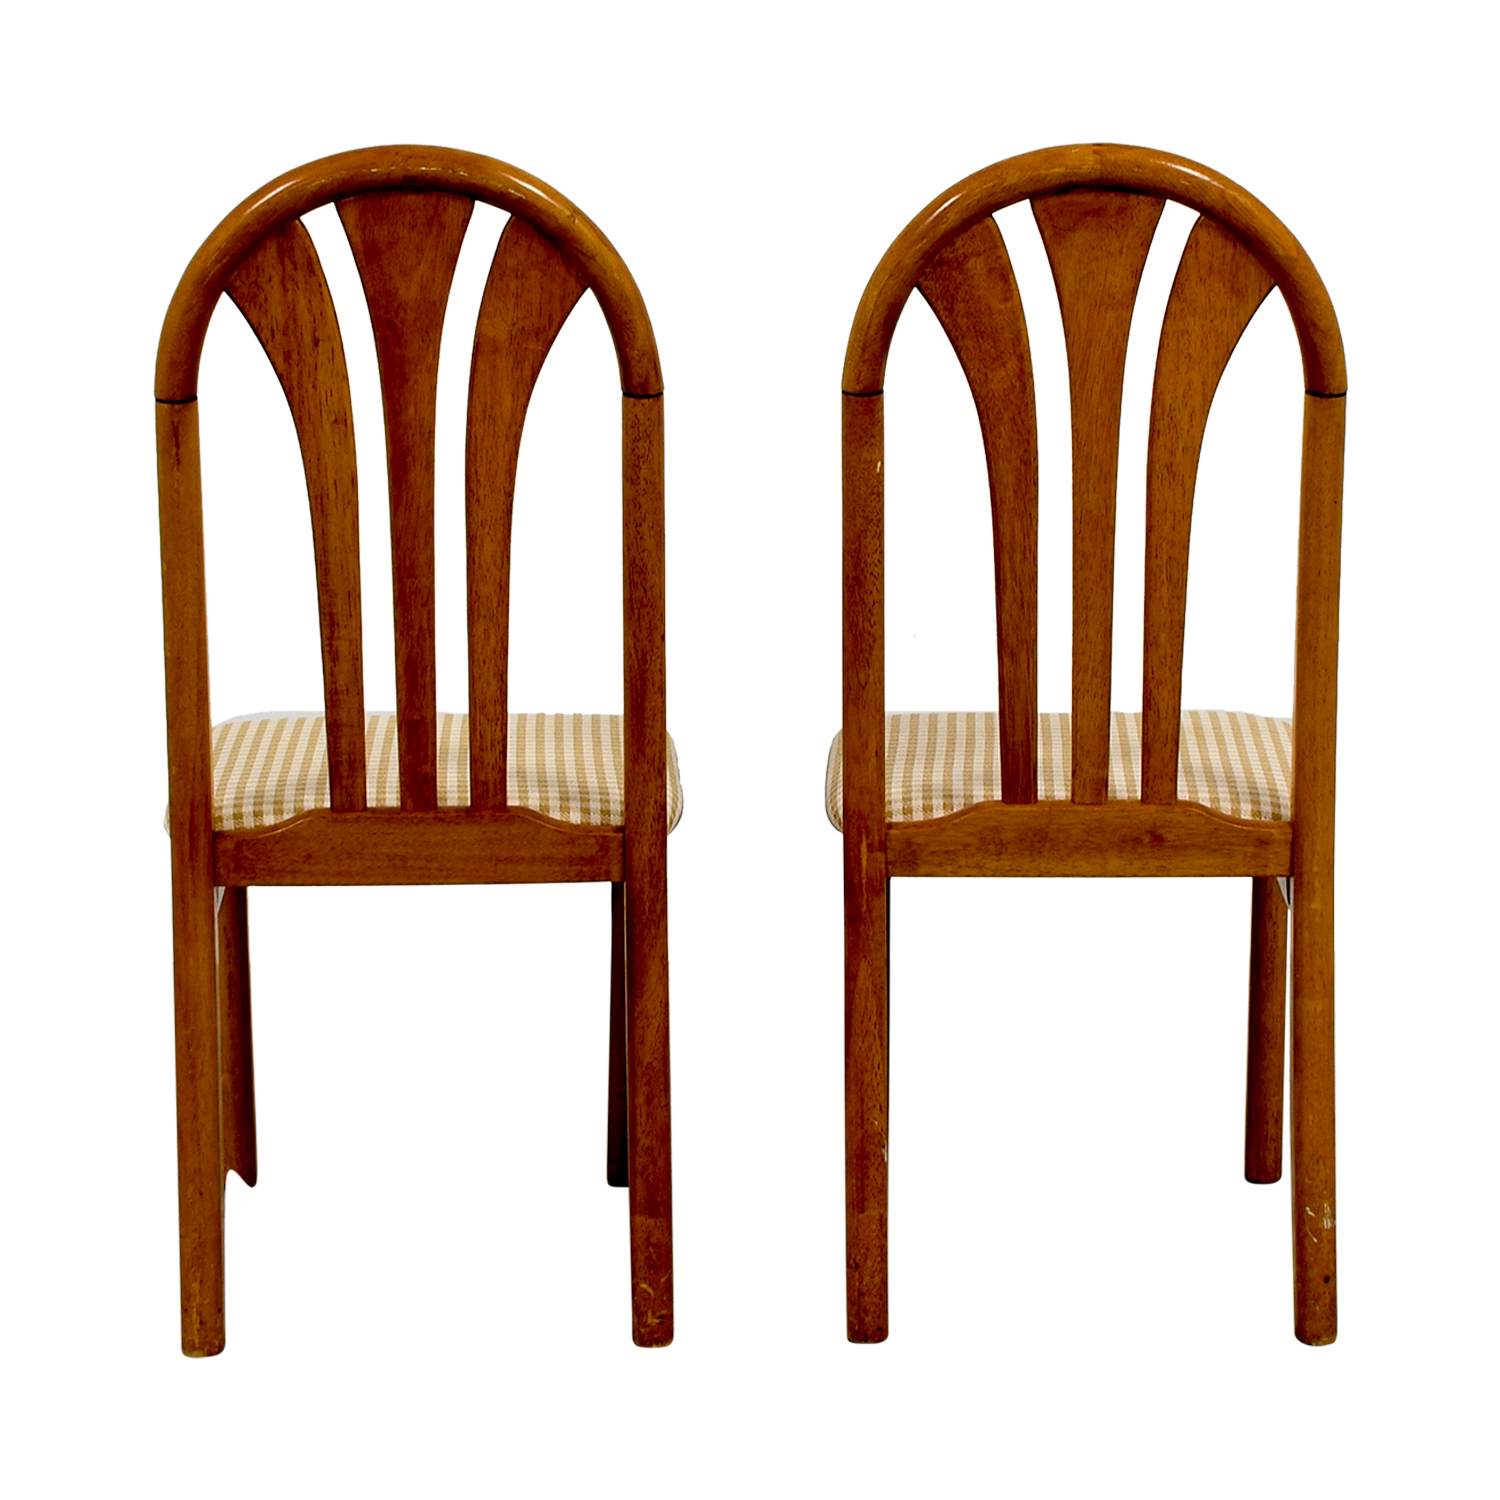 Gingham Upholstered Wood Chairs tan